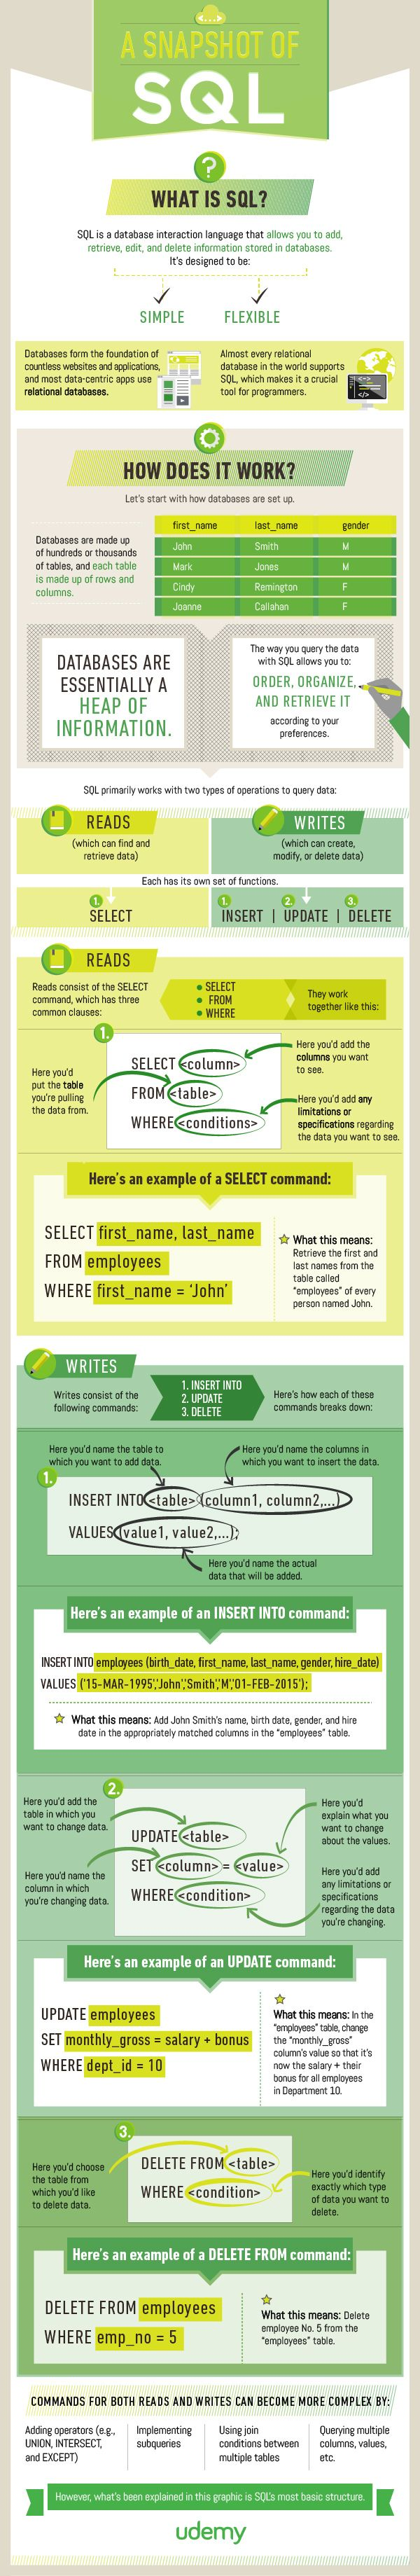 A Snapshot Of SQL - #infographic